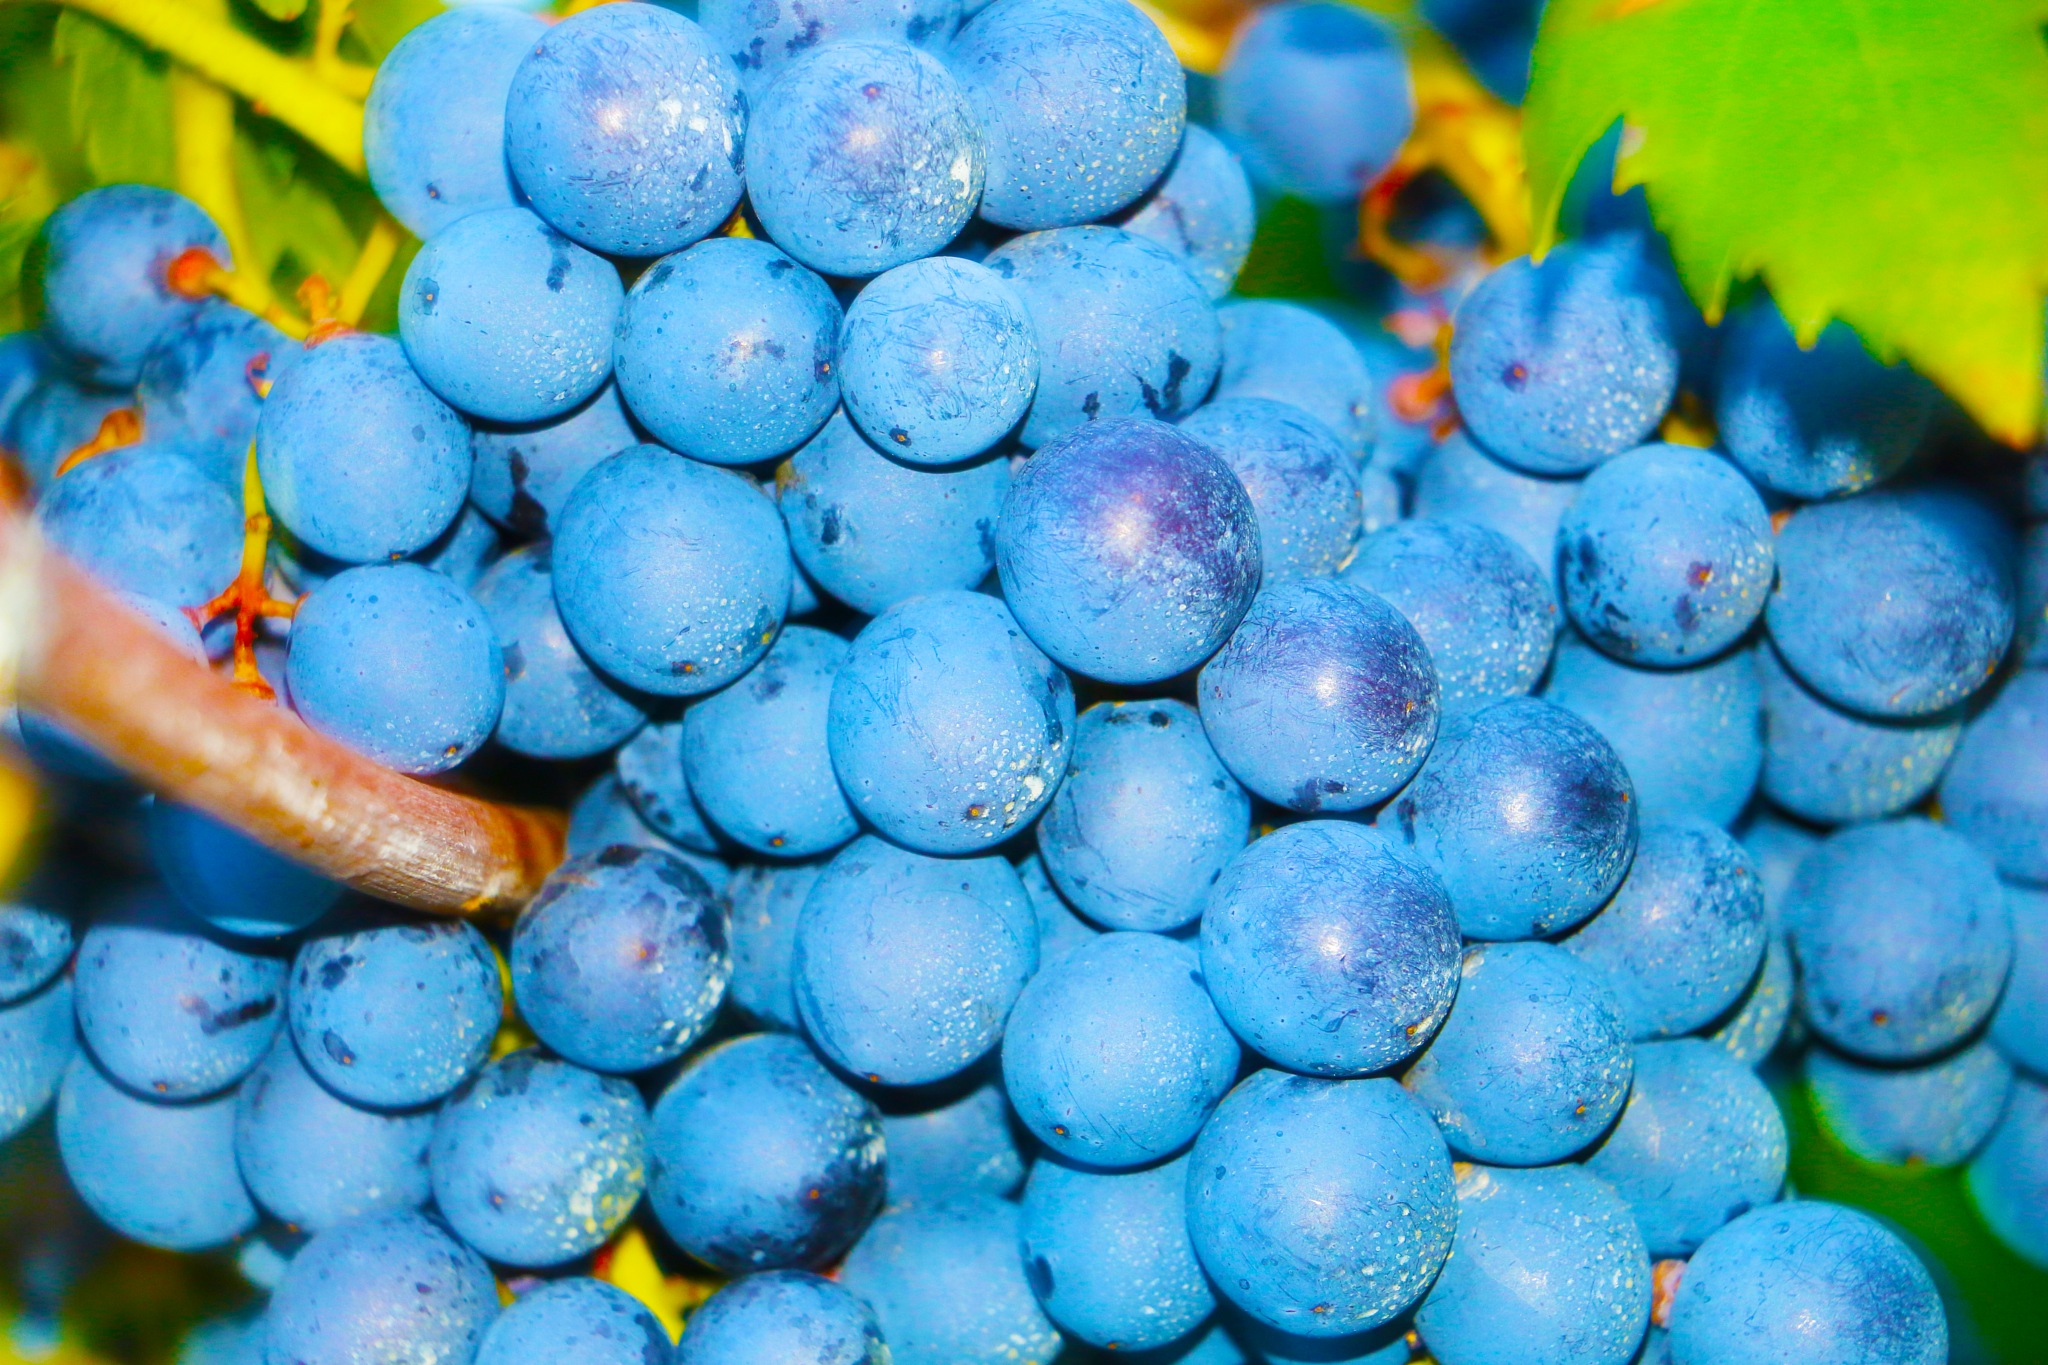 Grapes by RistylePhotography